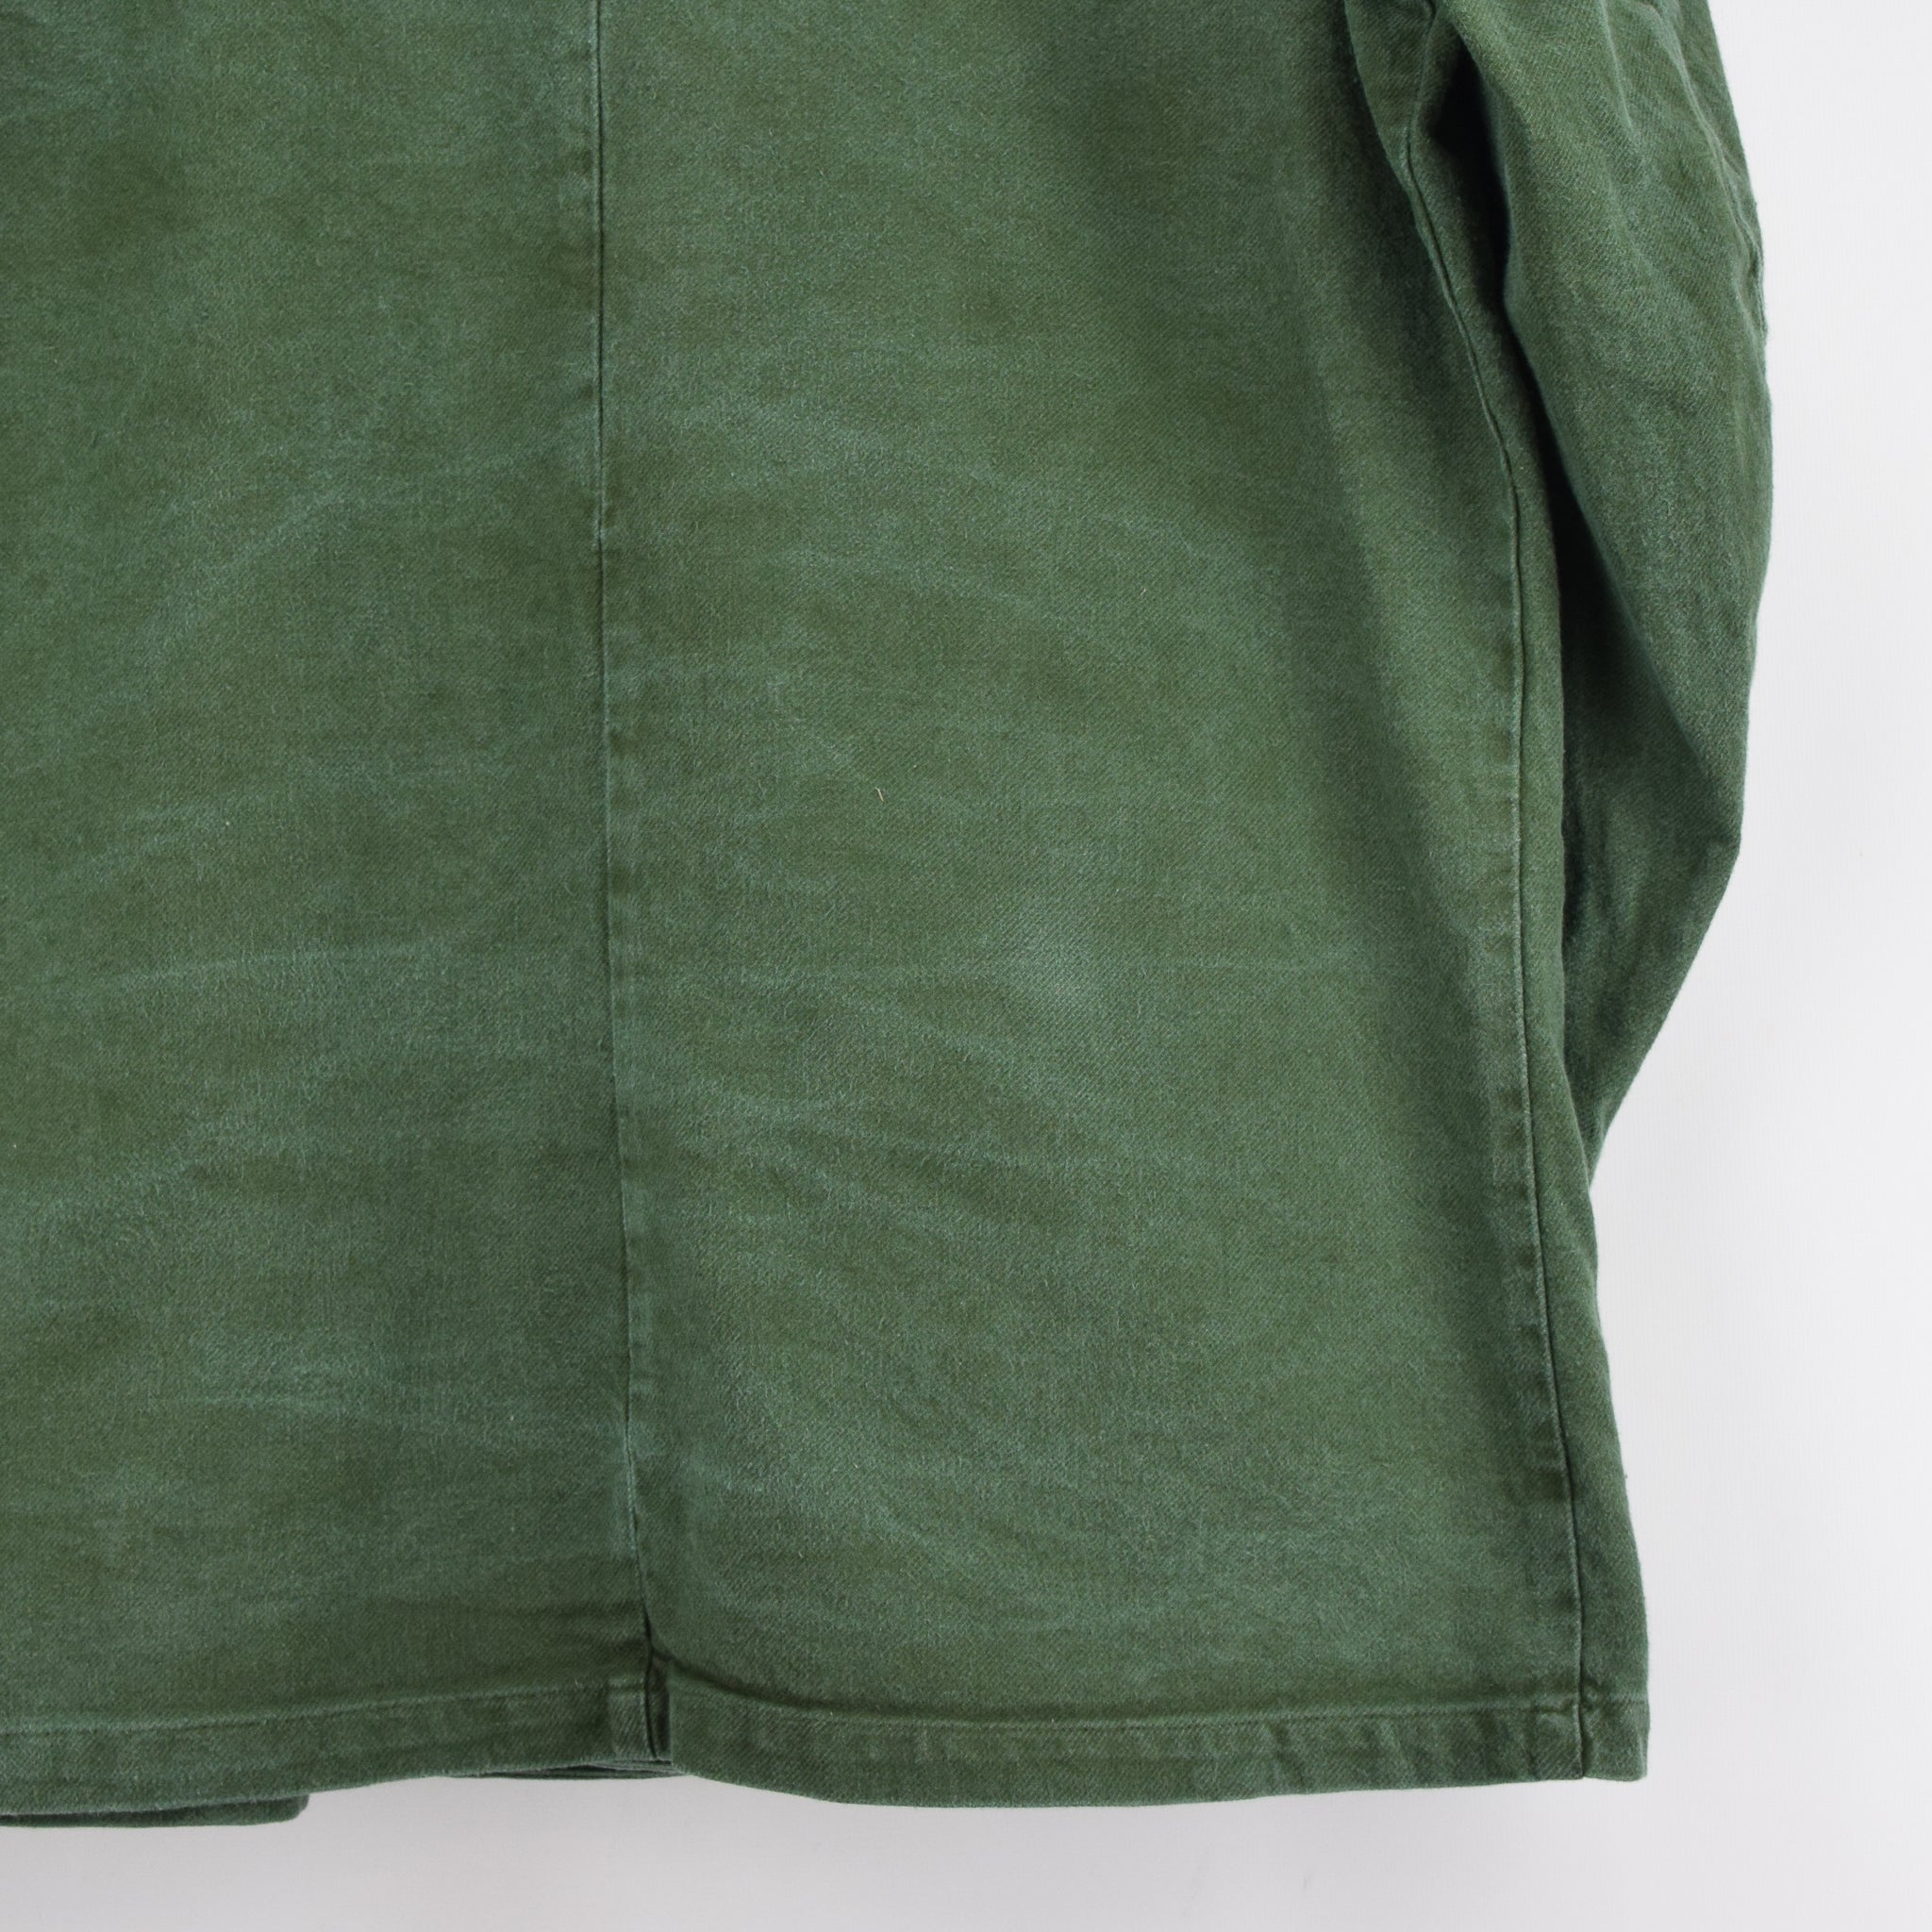 Vintage Swedish Worker Style Green Distressed Military Cotton Field Jacket L back hem